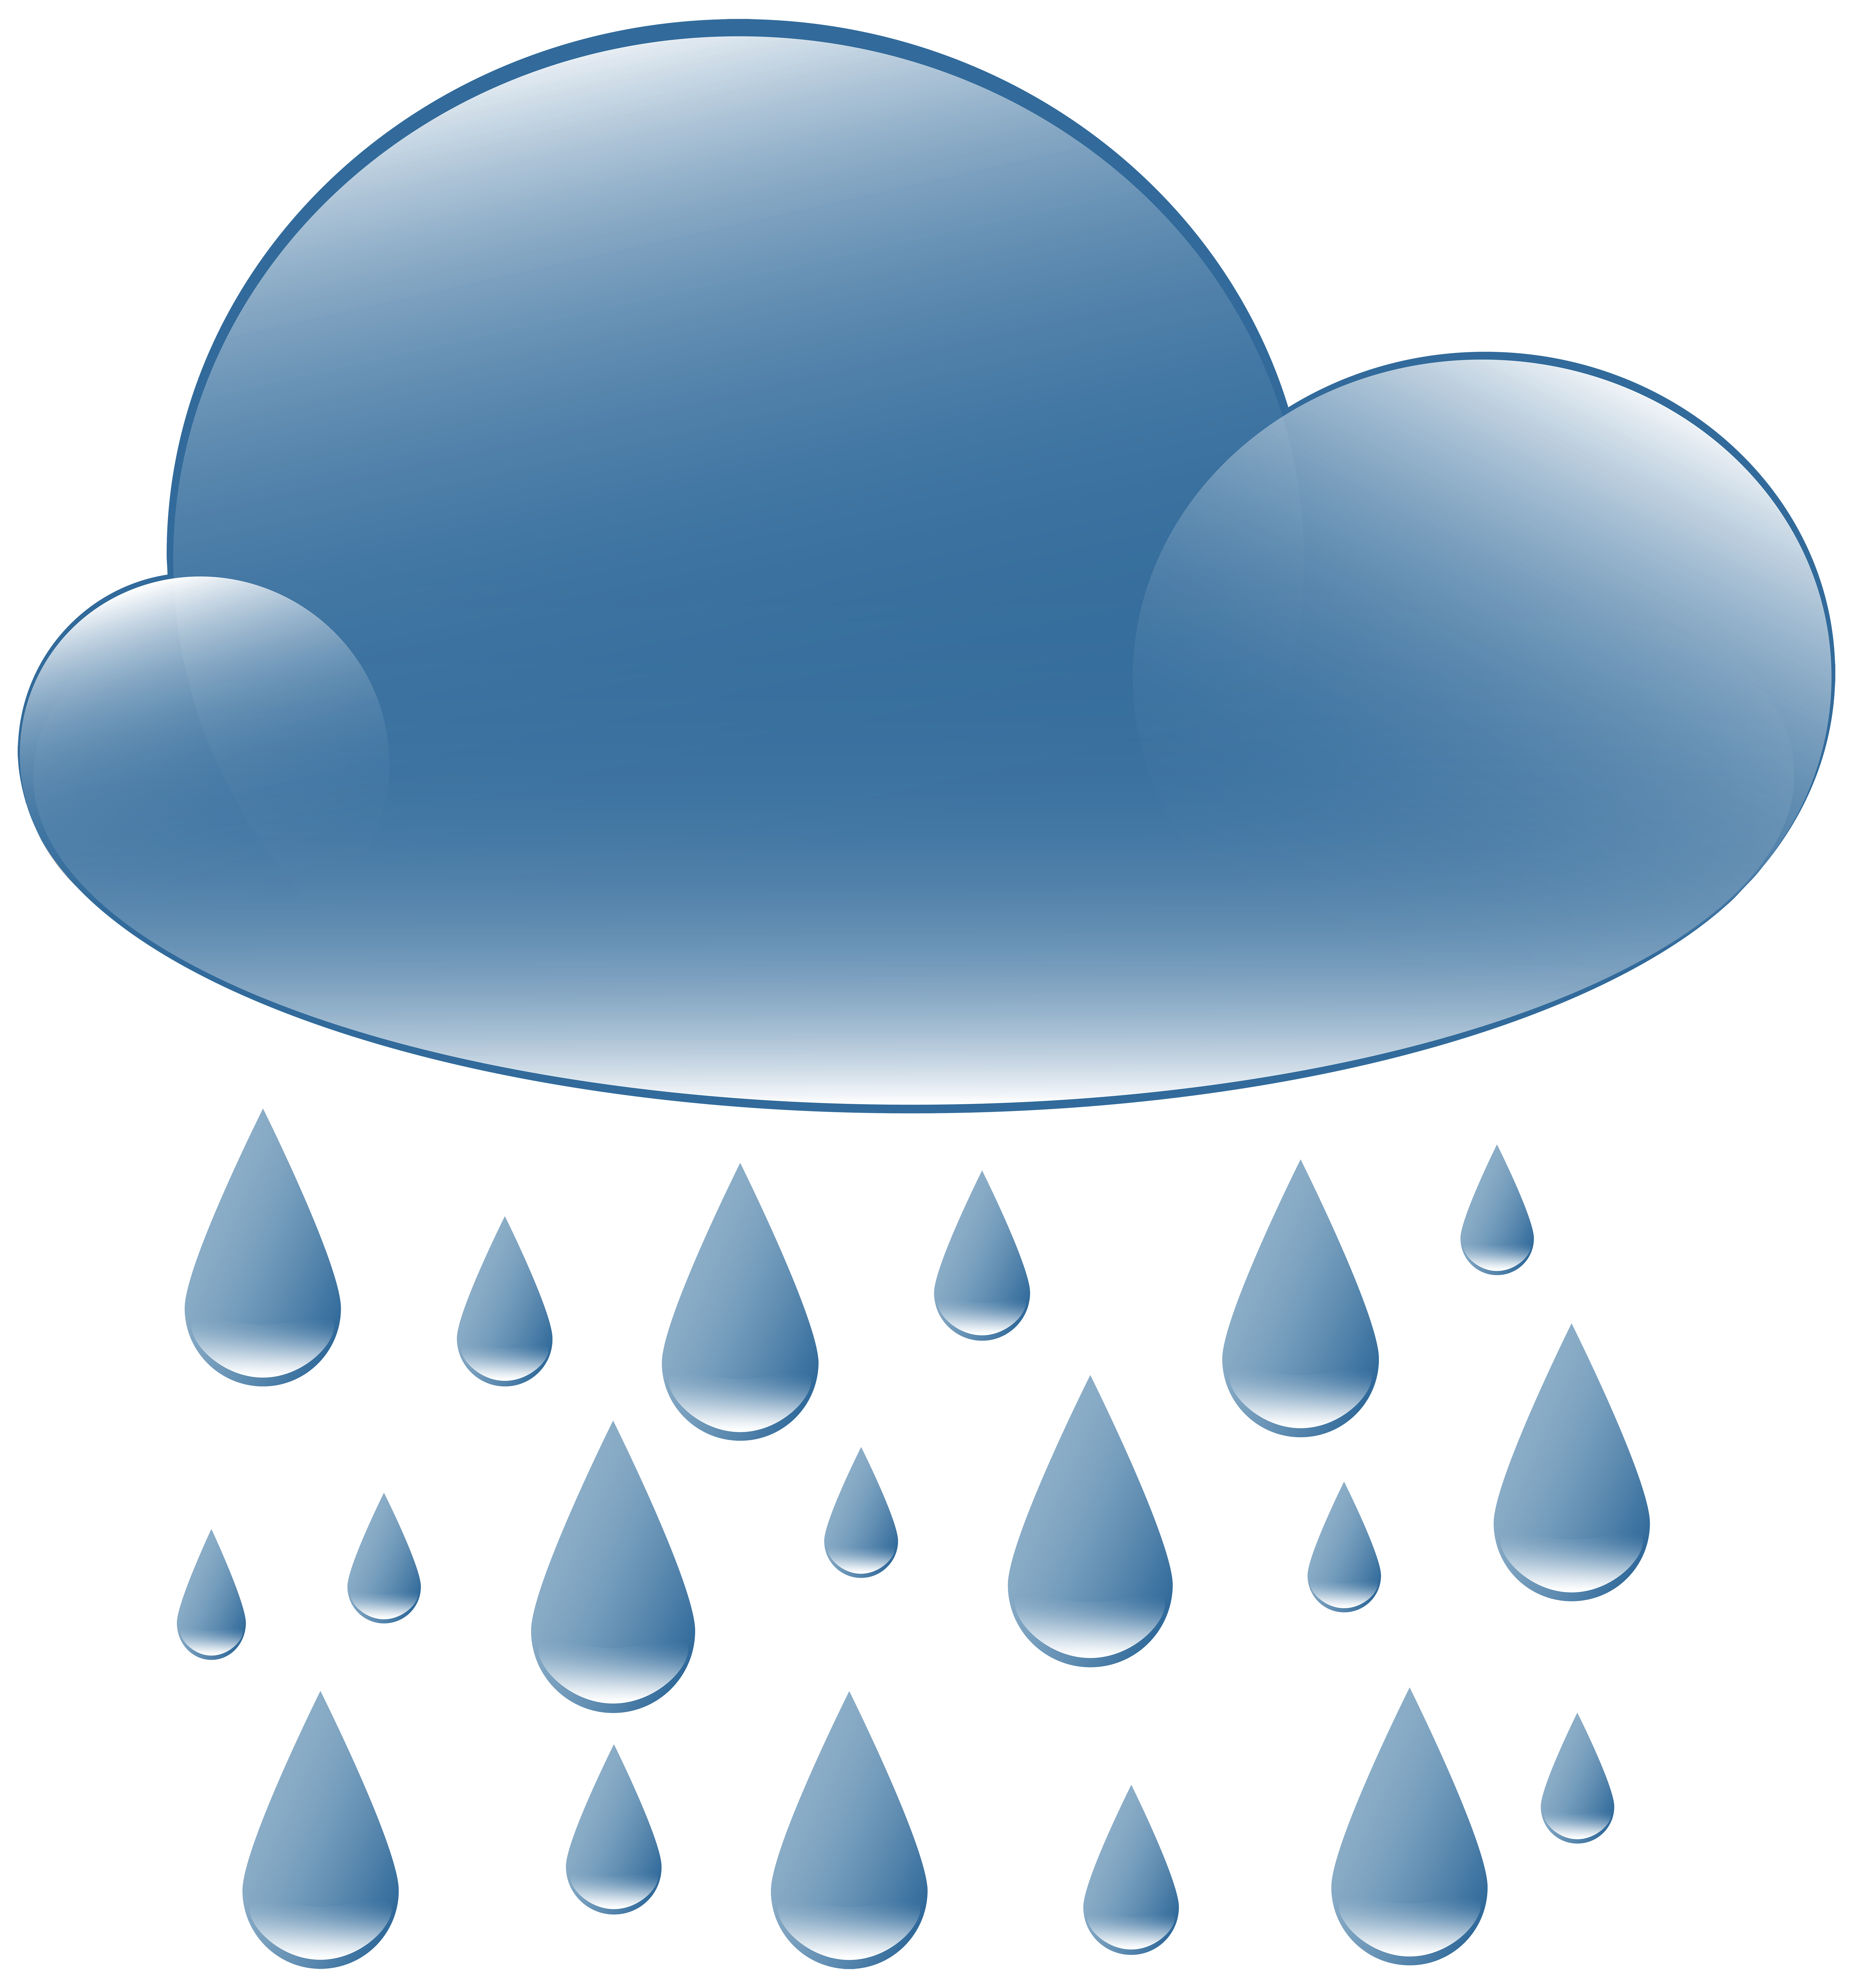 Cloud weather icon png. Clipart rain summer